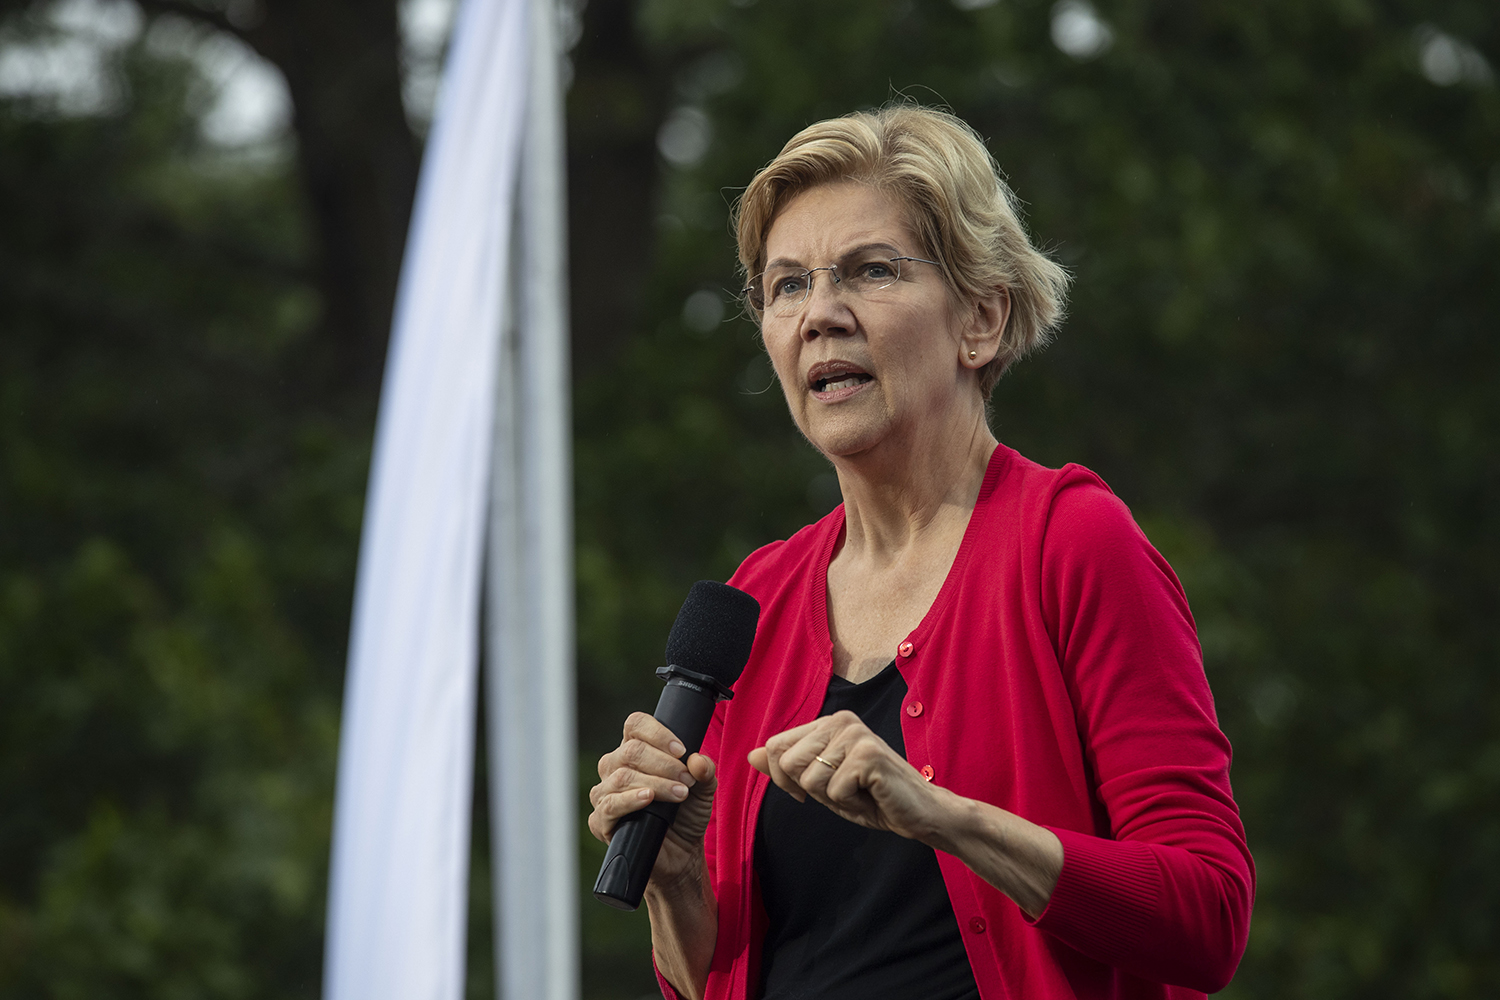 Sen. Elizabeth Warren, D-Mass, addresses the crowd during the Polk County Steak Fry in Des Moines on Saturday Sept. 21, 2019. 17 democratic candidates gave speeches and grilled steaks.